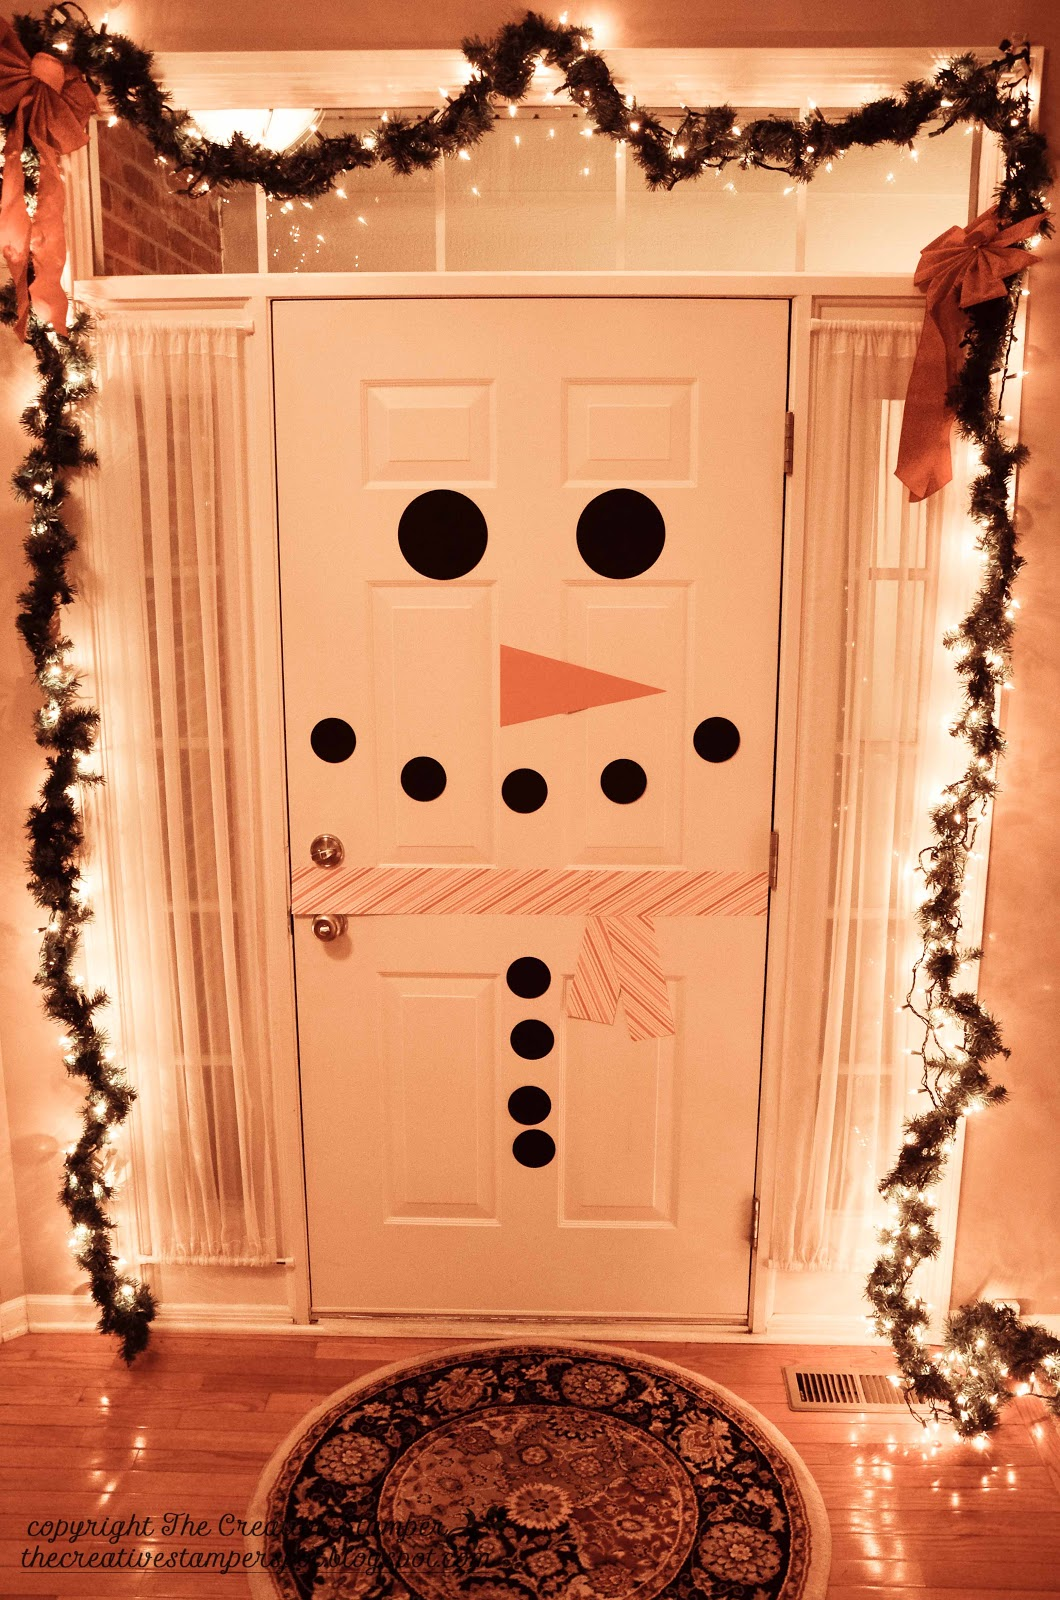 3 theres a snowman at the door